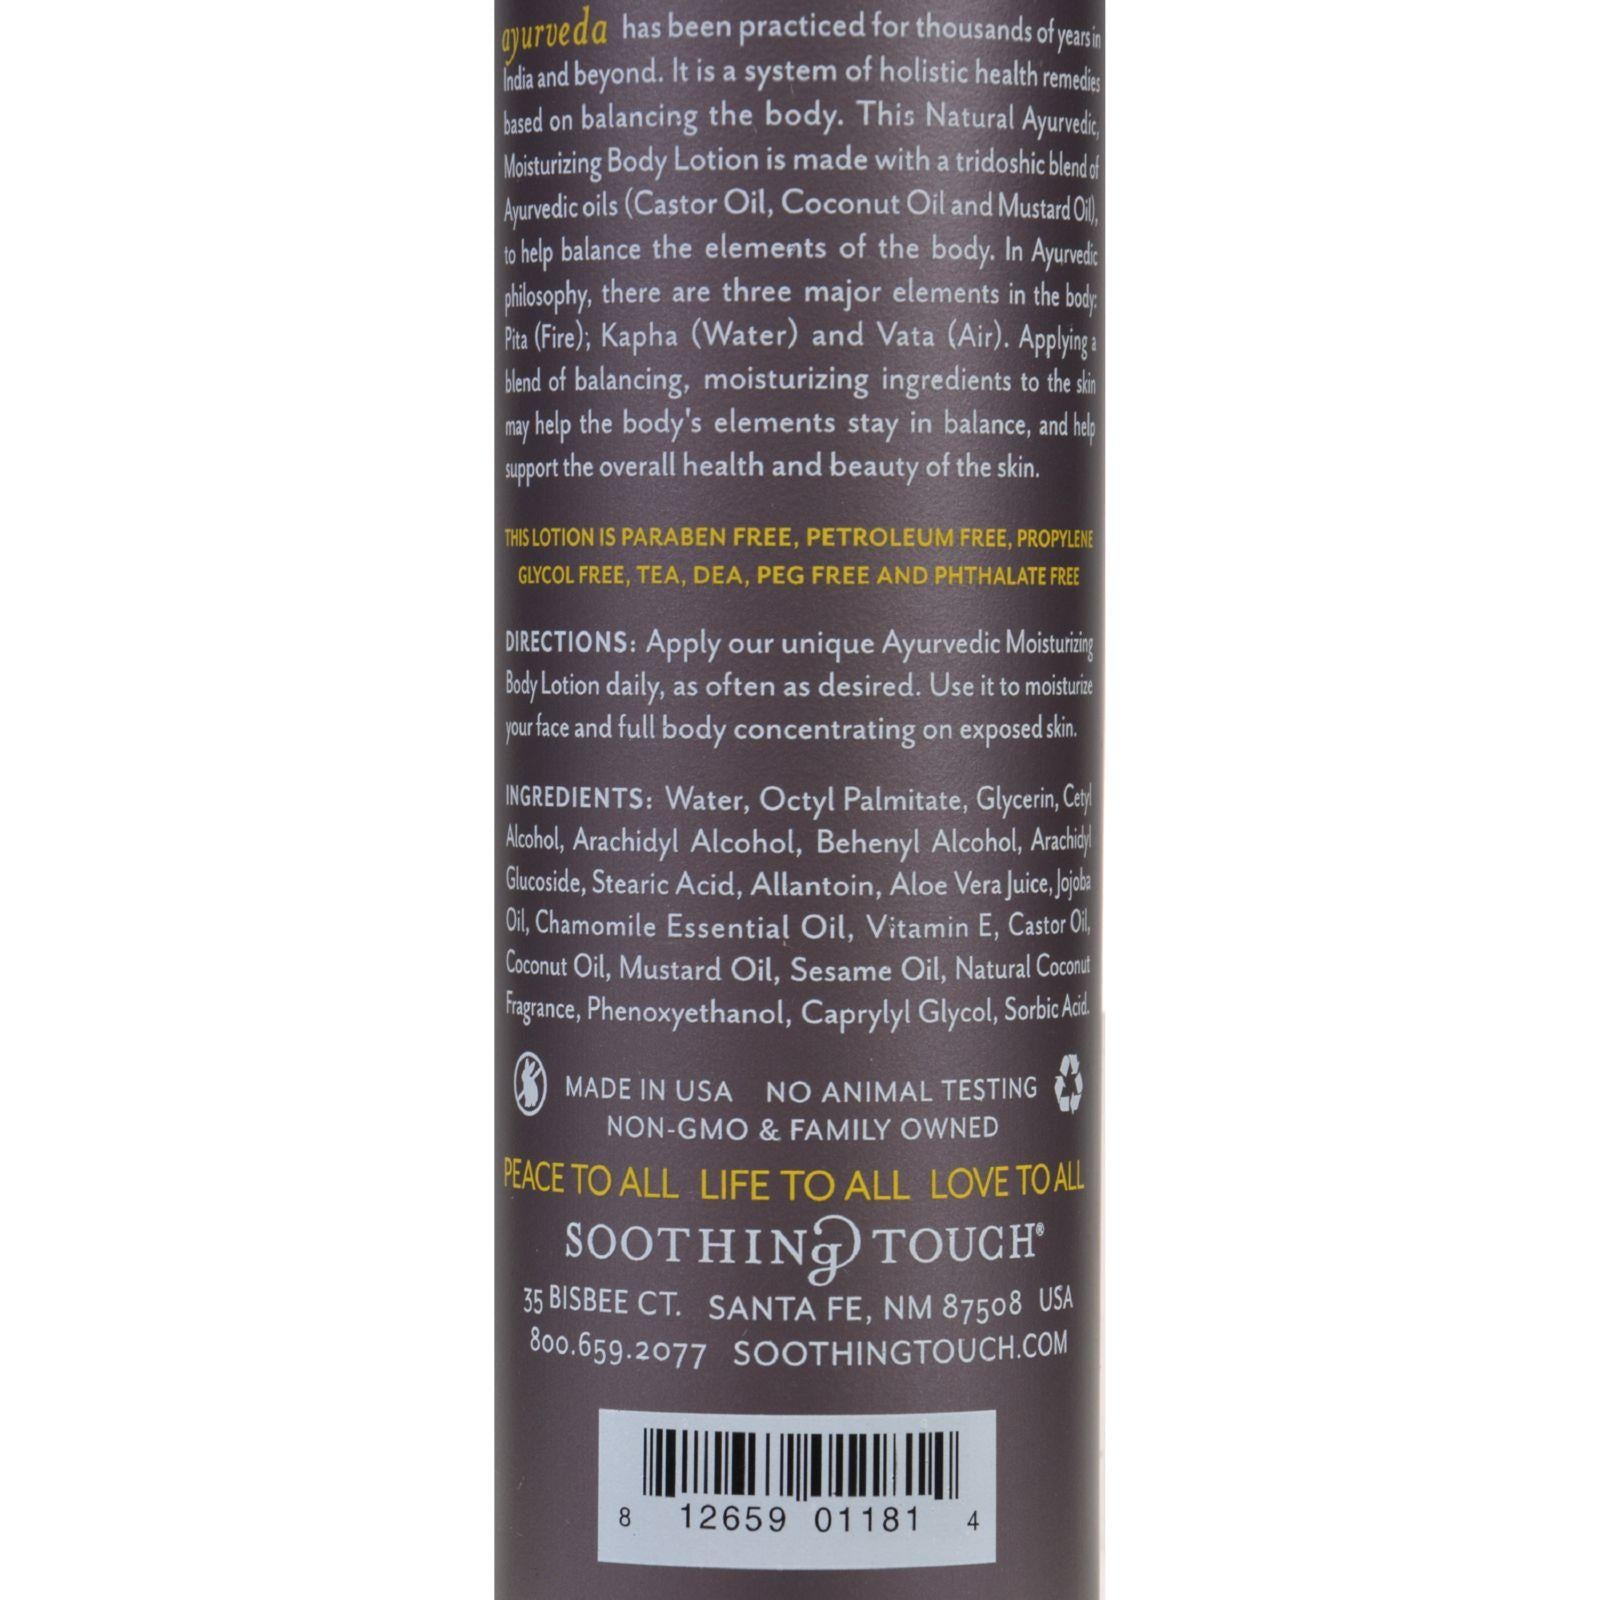 Soothing Touch Body Lotion - Ayurveda - Island Coconut - 8 Oz